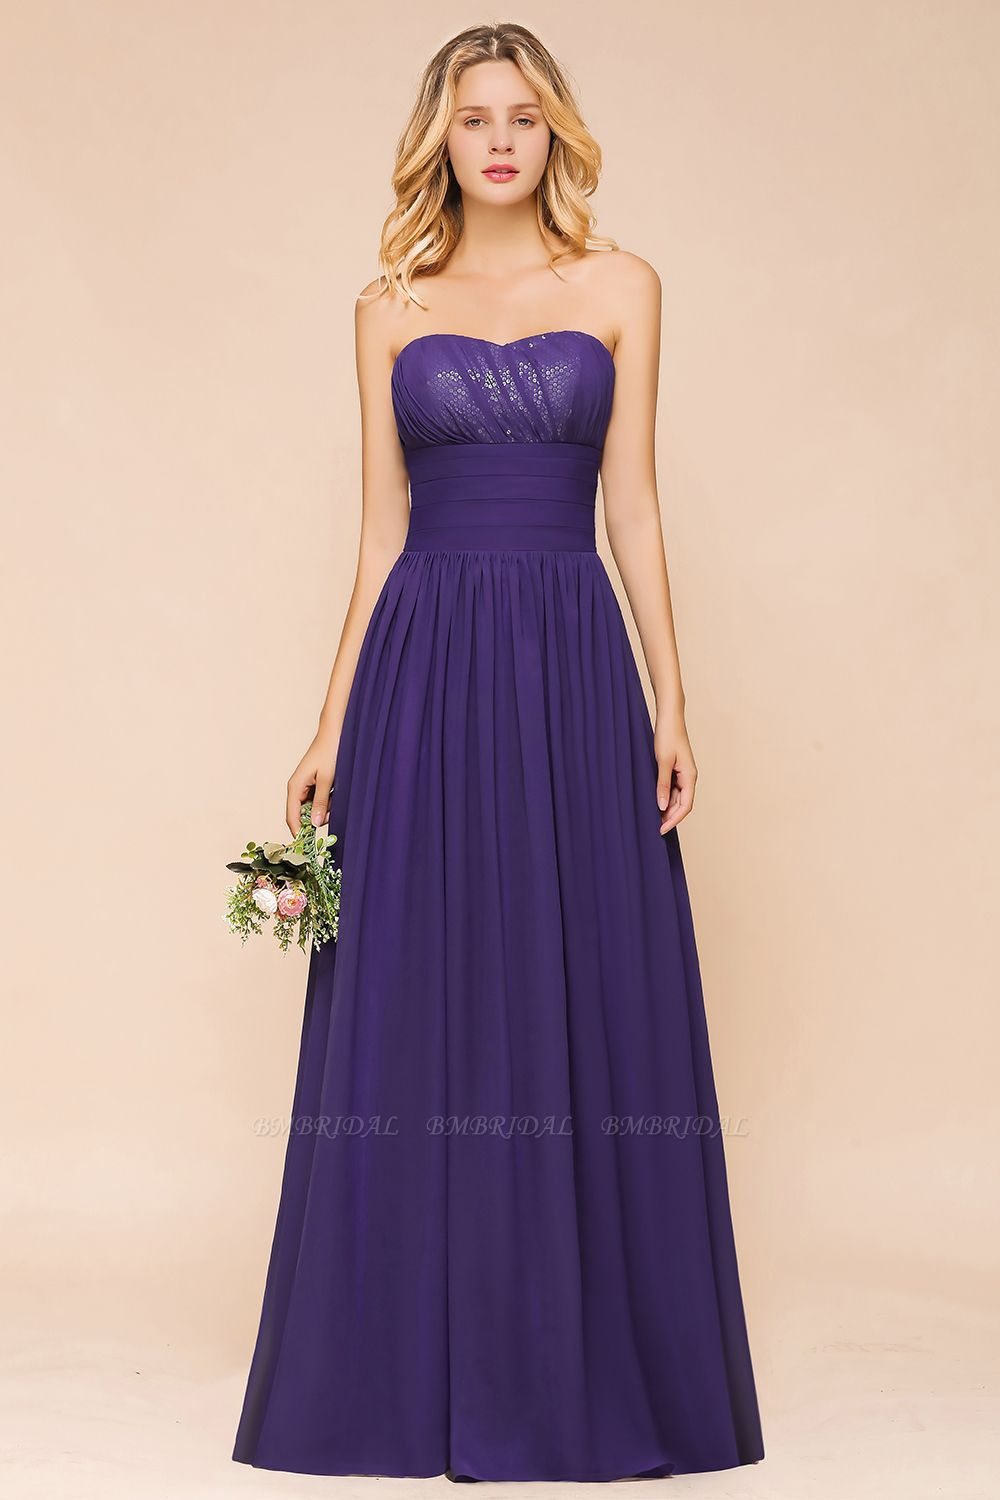 BMbridal Affordable Sweetheart Sequins Regency Bridesmaid Dress with Pleats